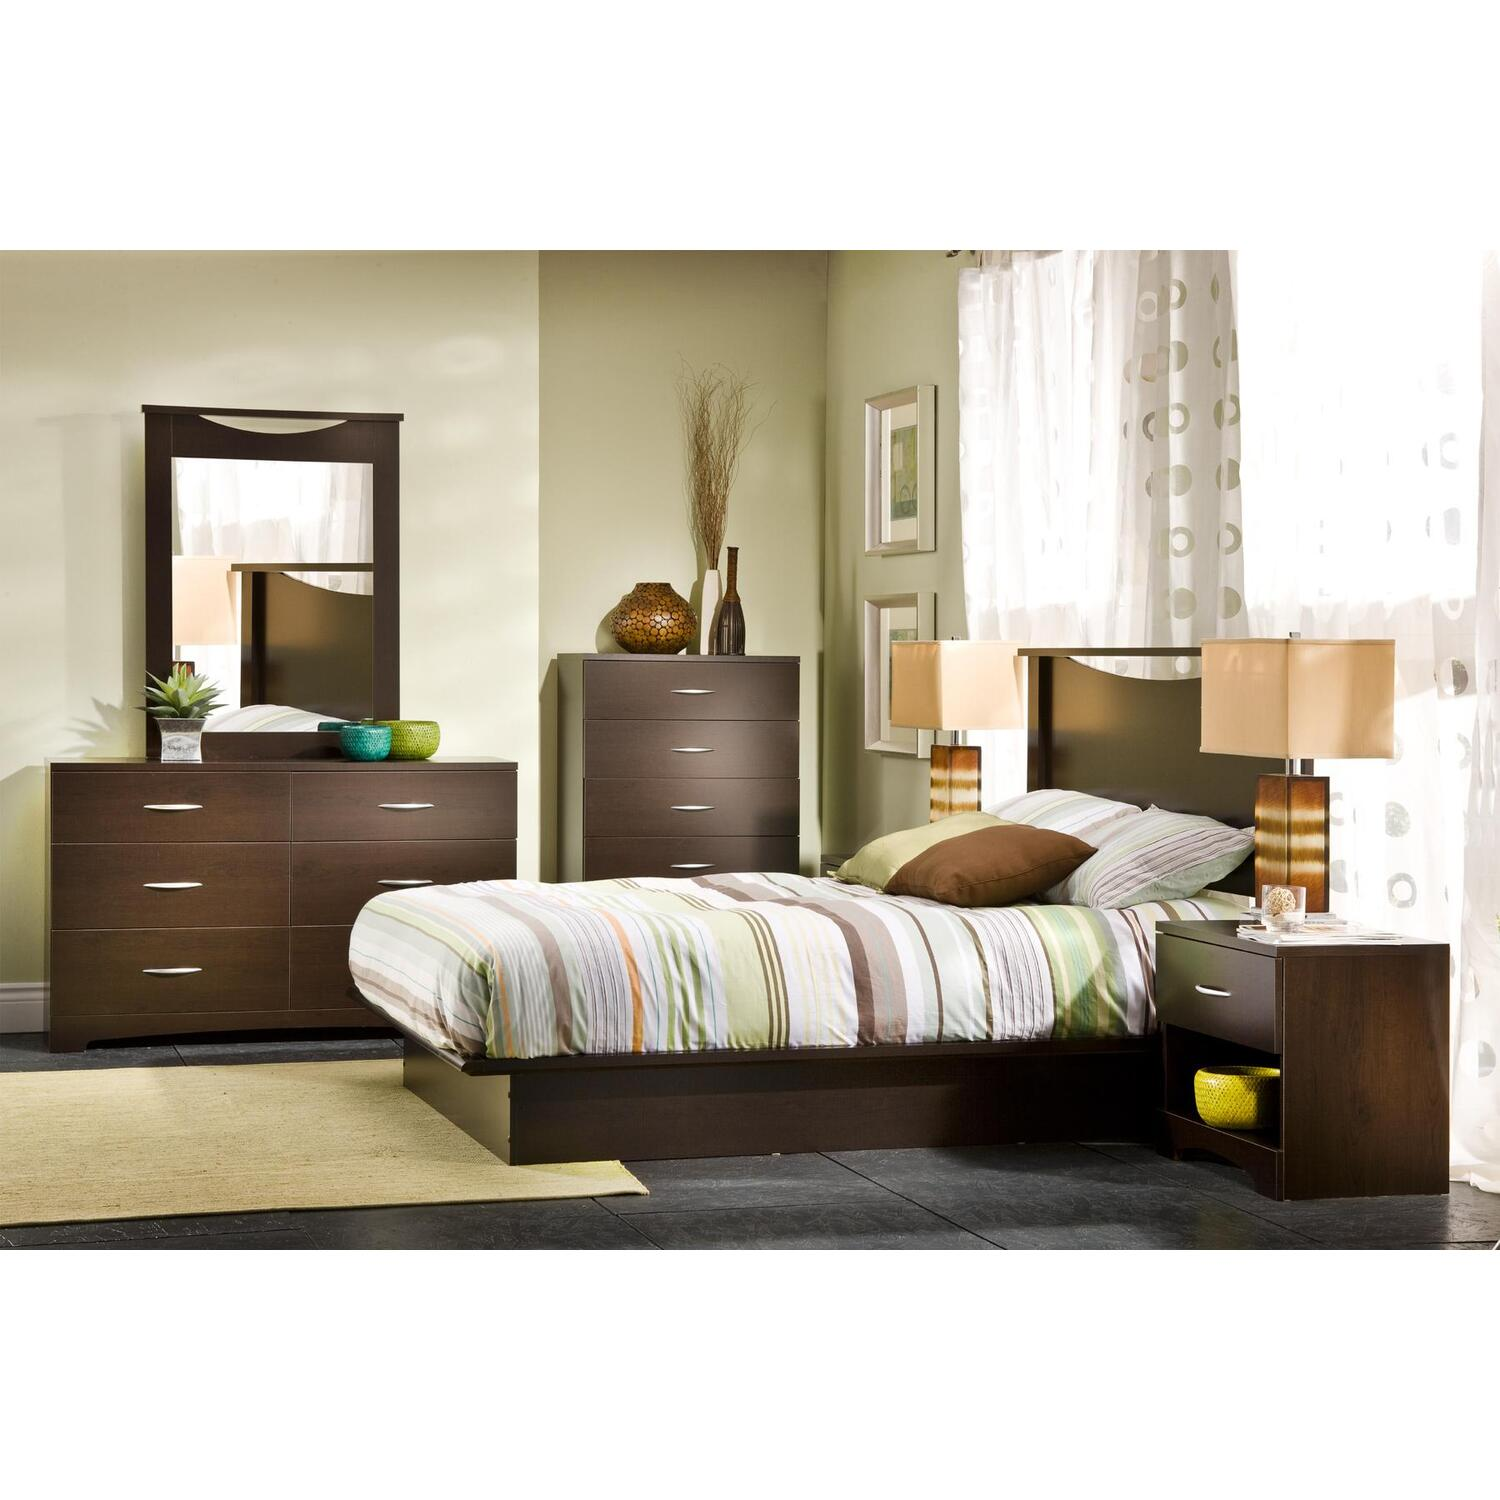 Back Bay Queen Platform 7 Piece Bedroom Set - $1322.99 | OJCommerce